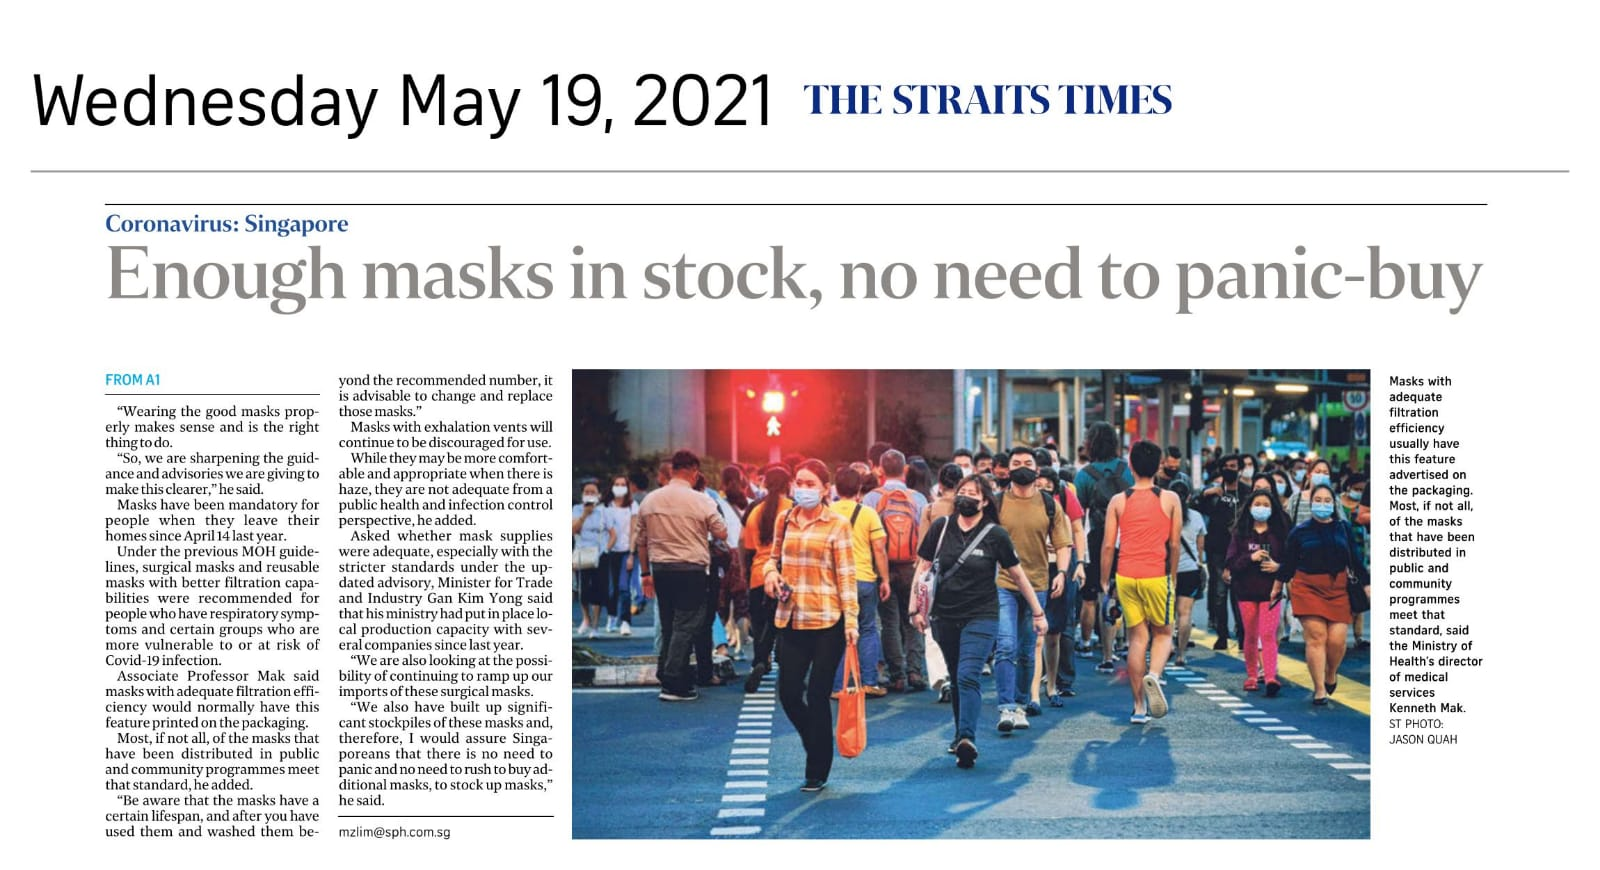 Enough masks in stock, no need to panic-buy - Published in The Straits Times May 19, 2021